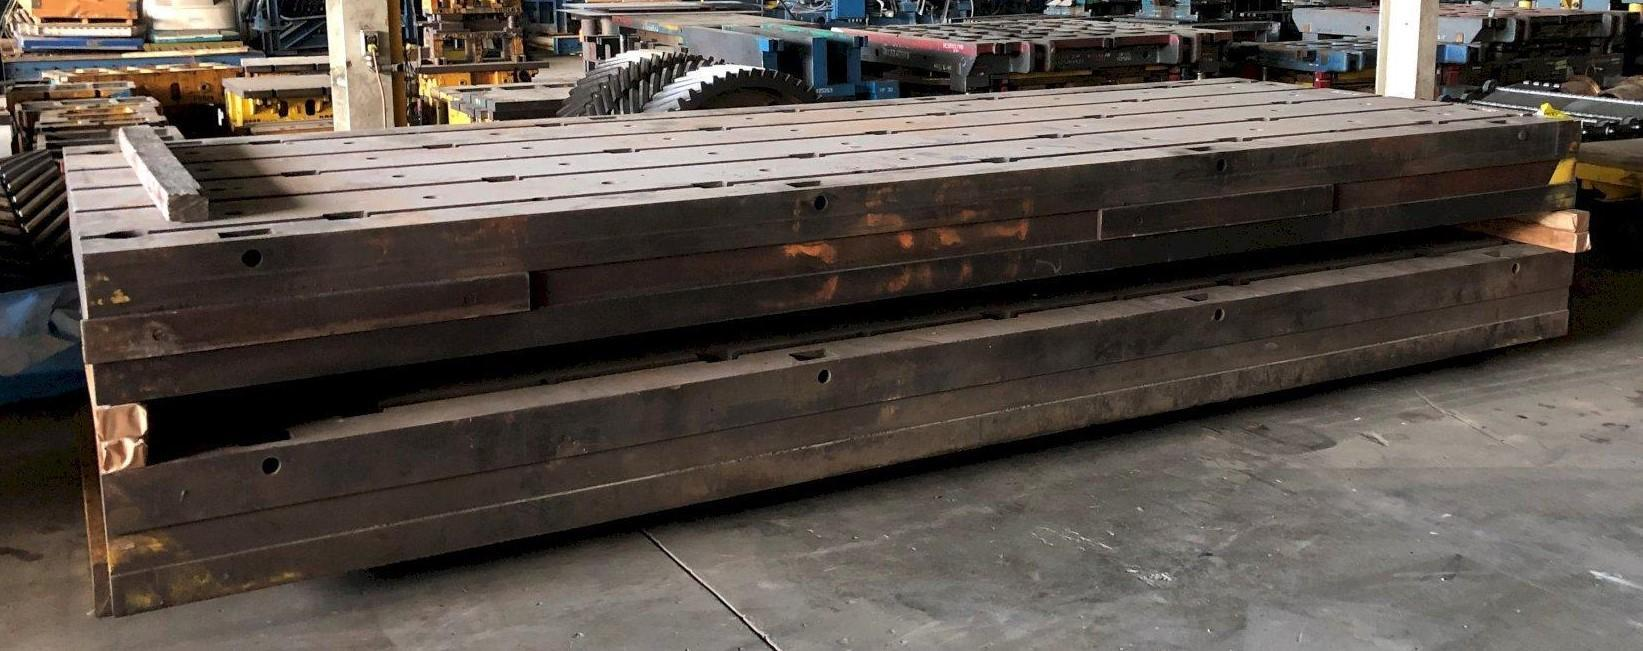 """154"""" x 203"""" x 13-3/4"""" T-SLOTTED FLOOR PLATE: STOCK #11491"""